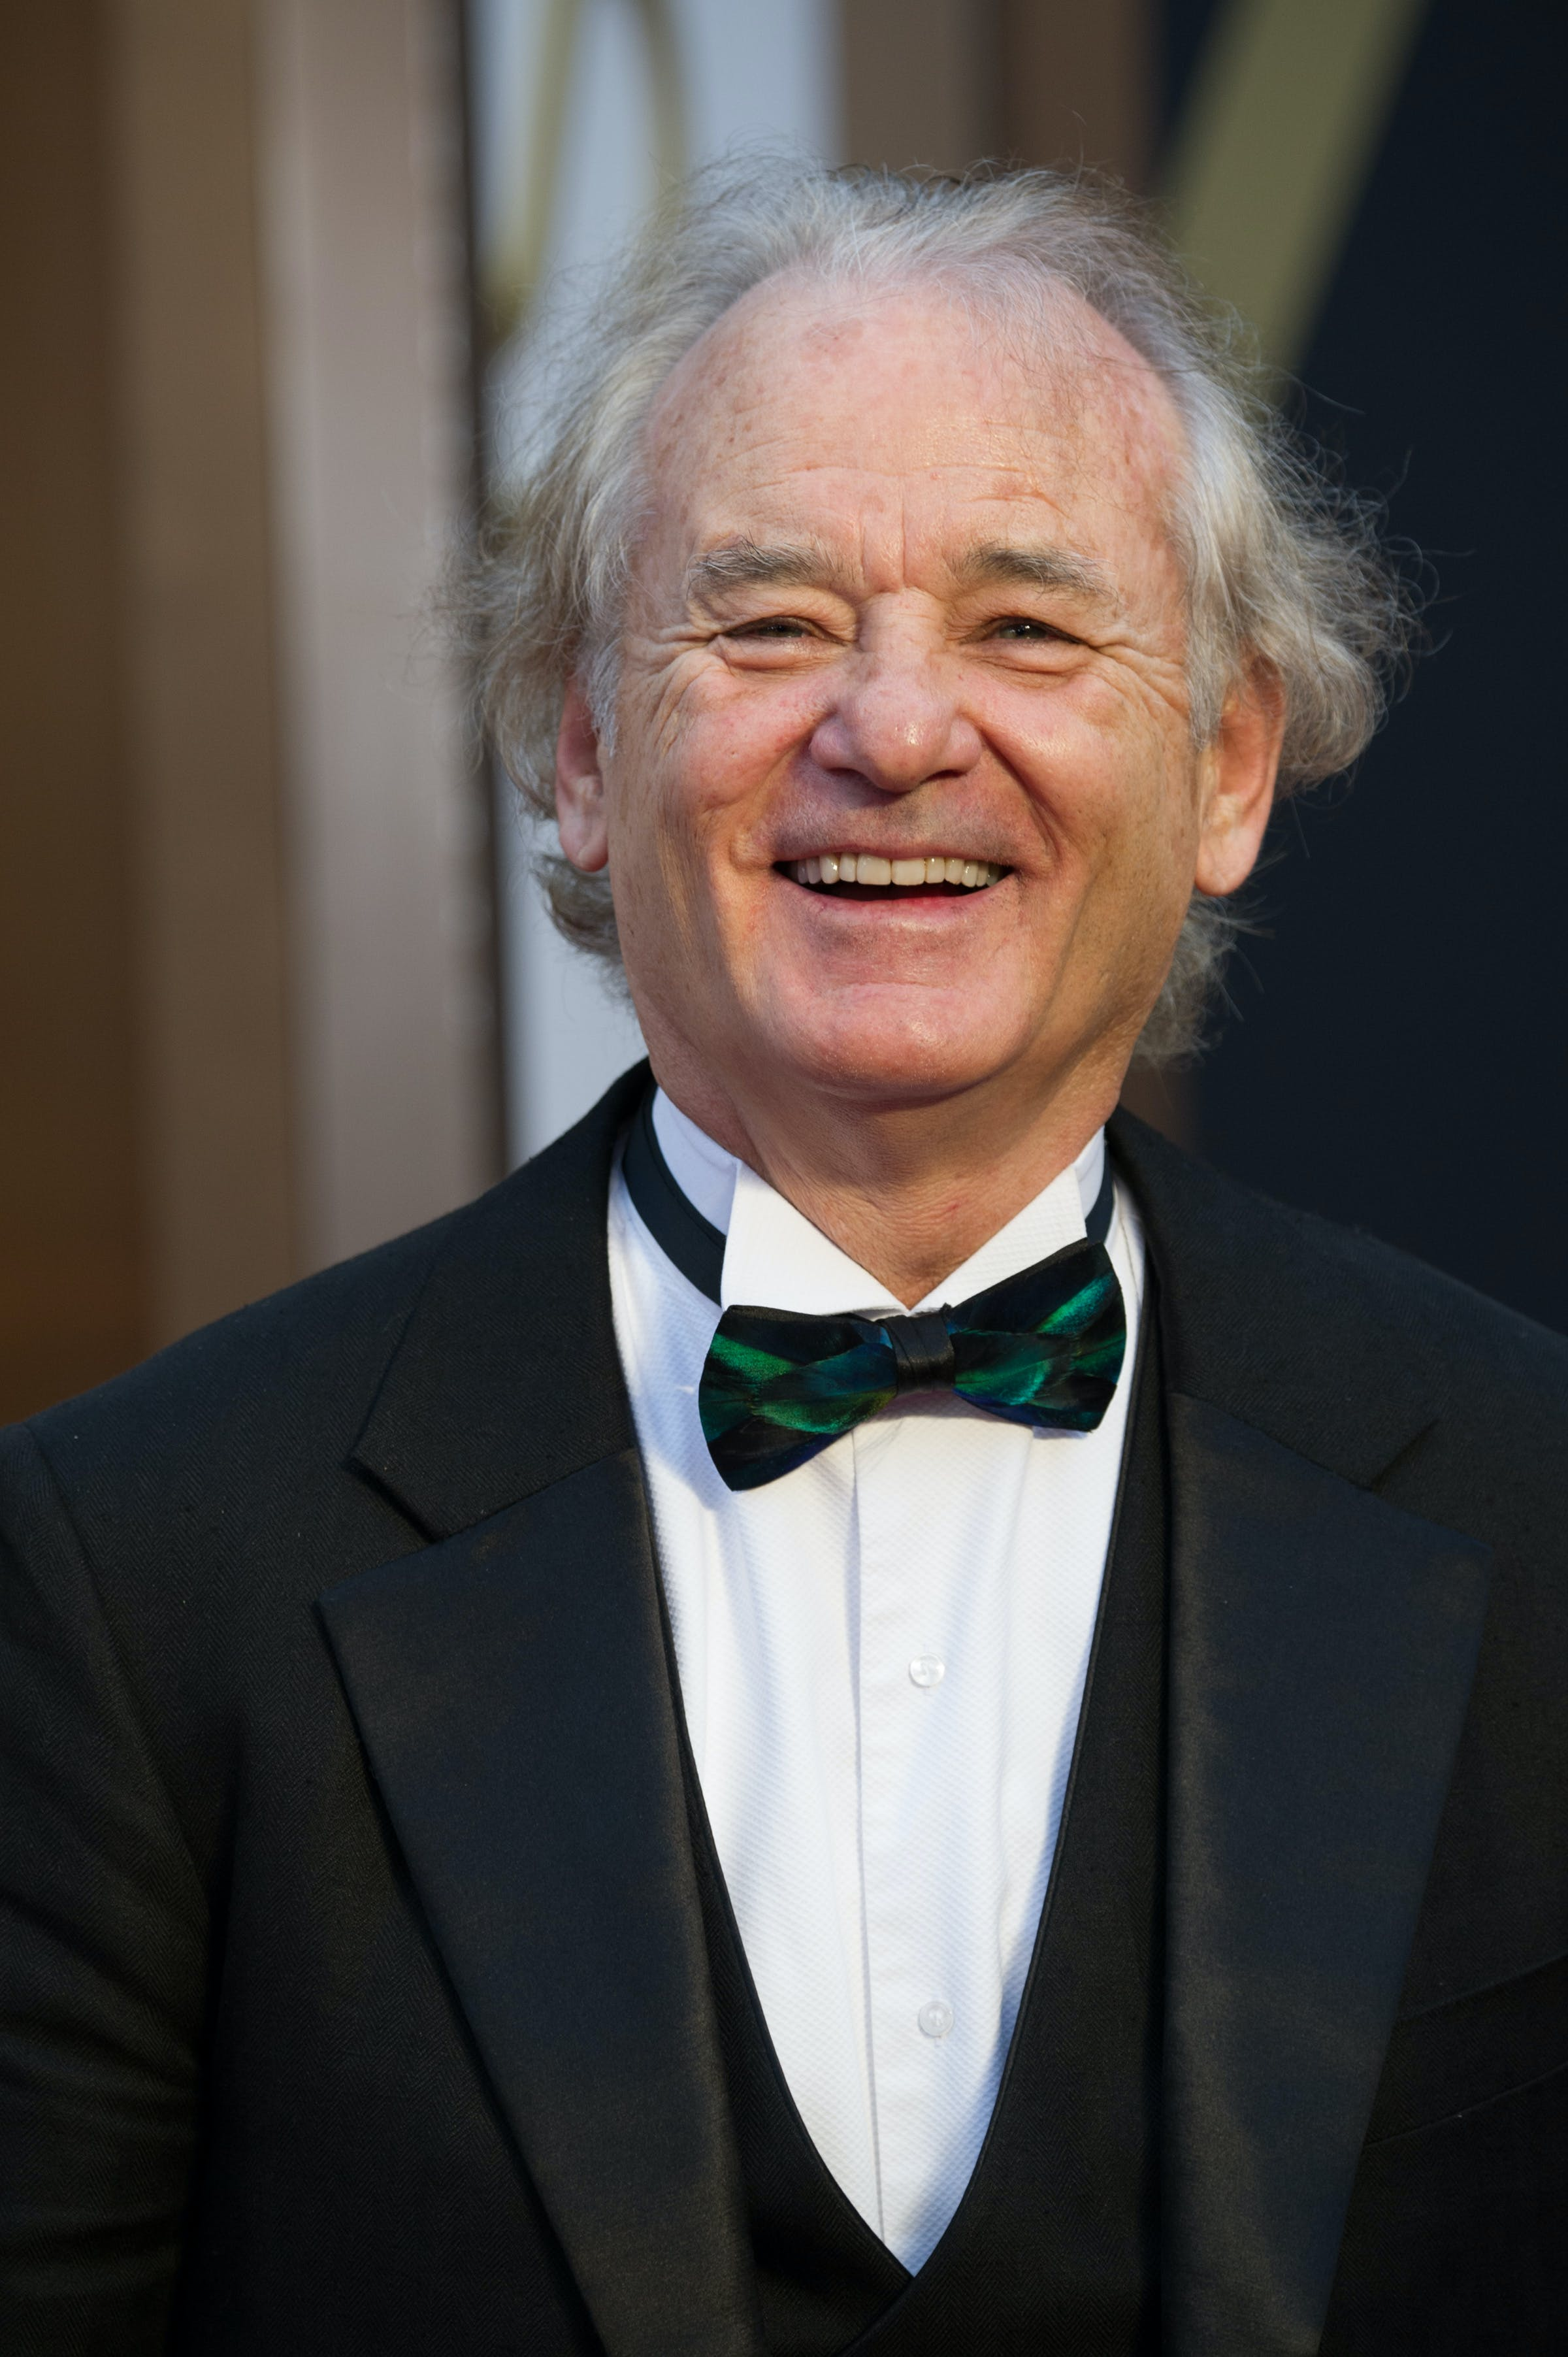 bill murray oscars bow tie bank robber